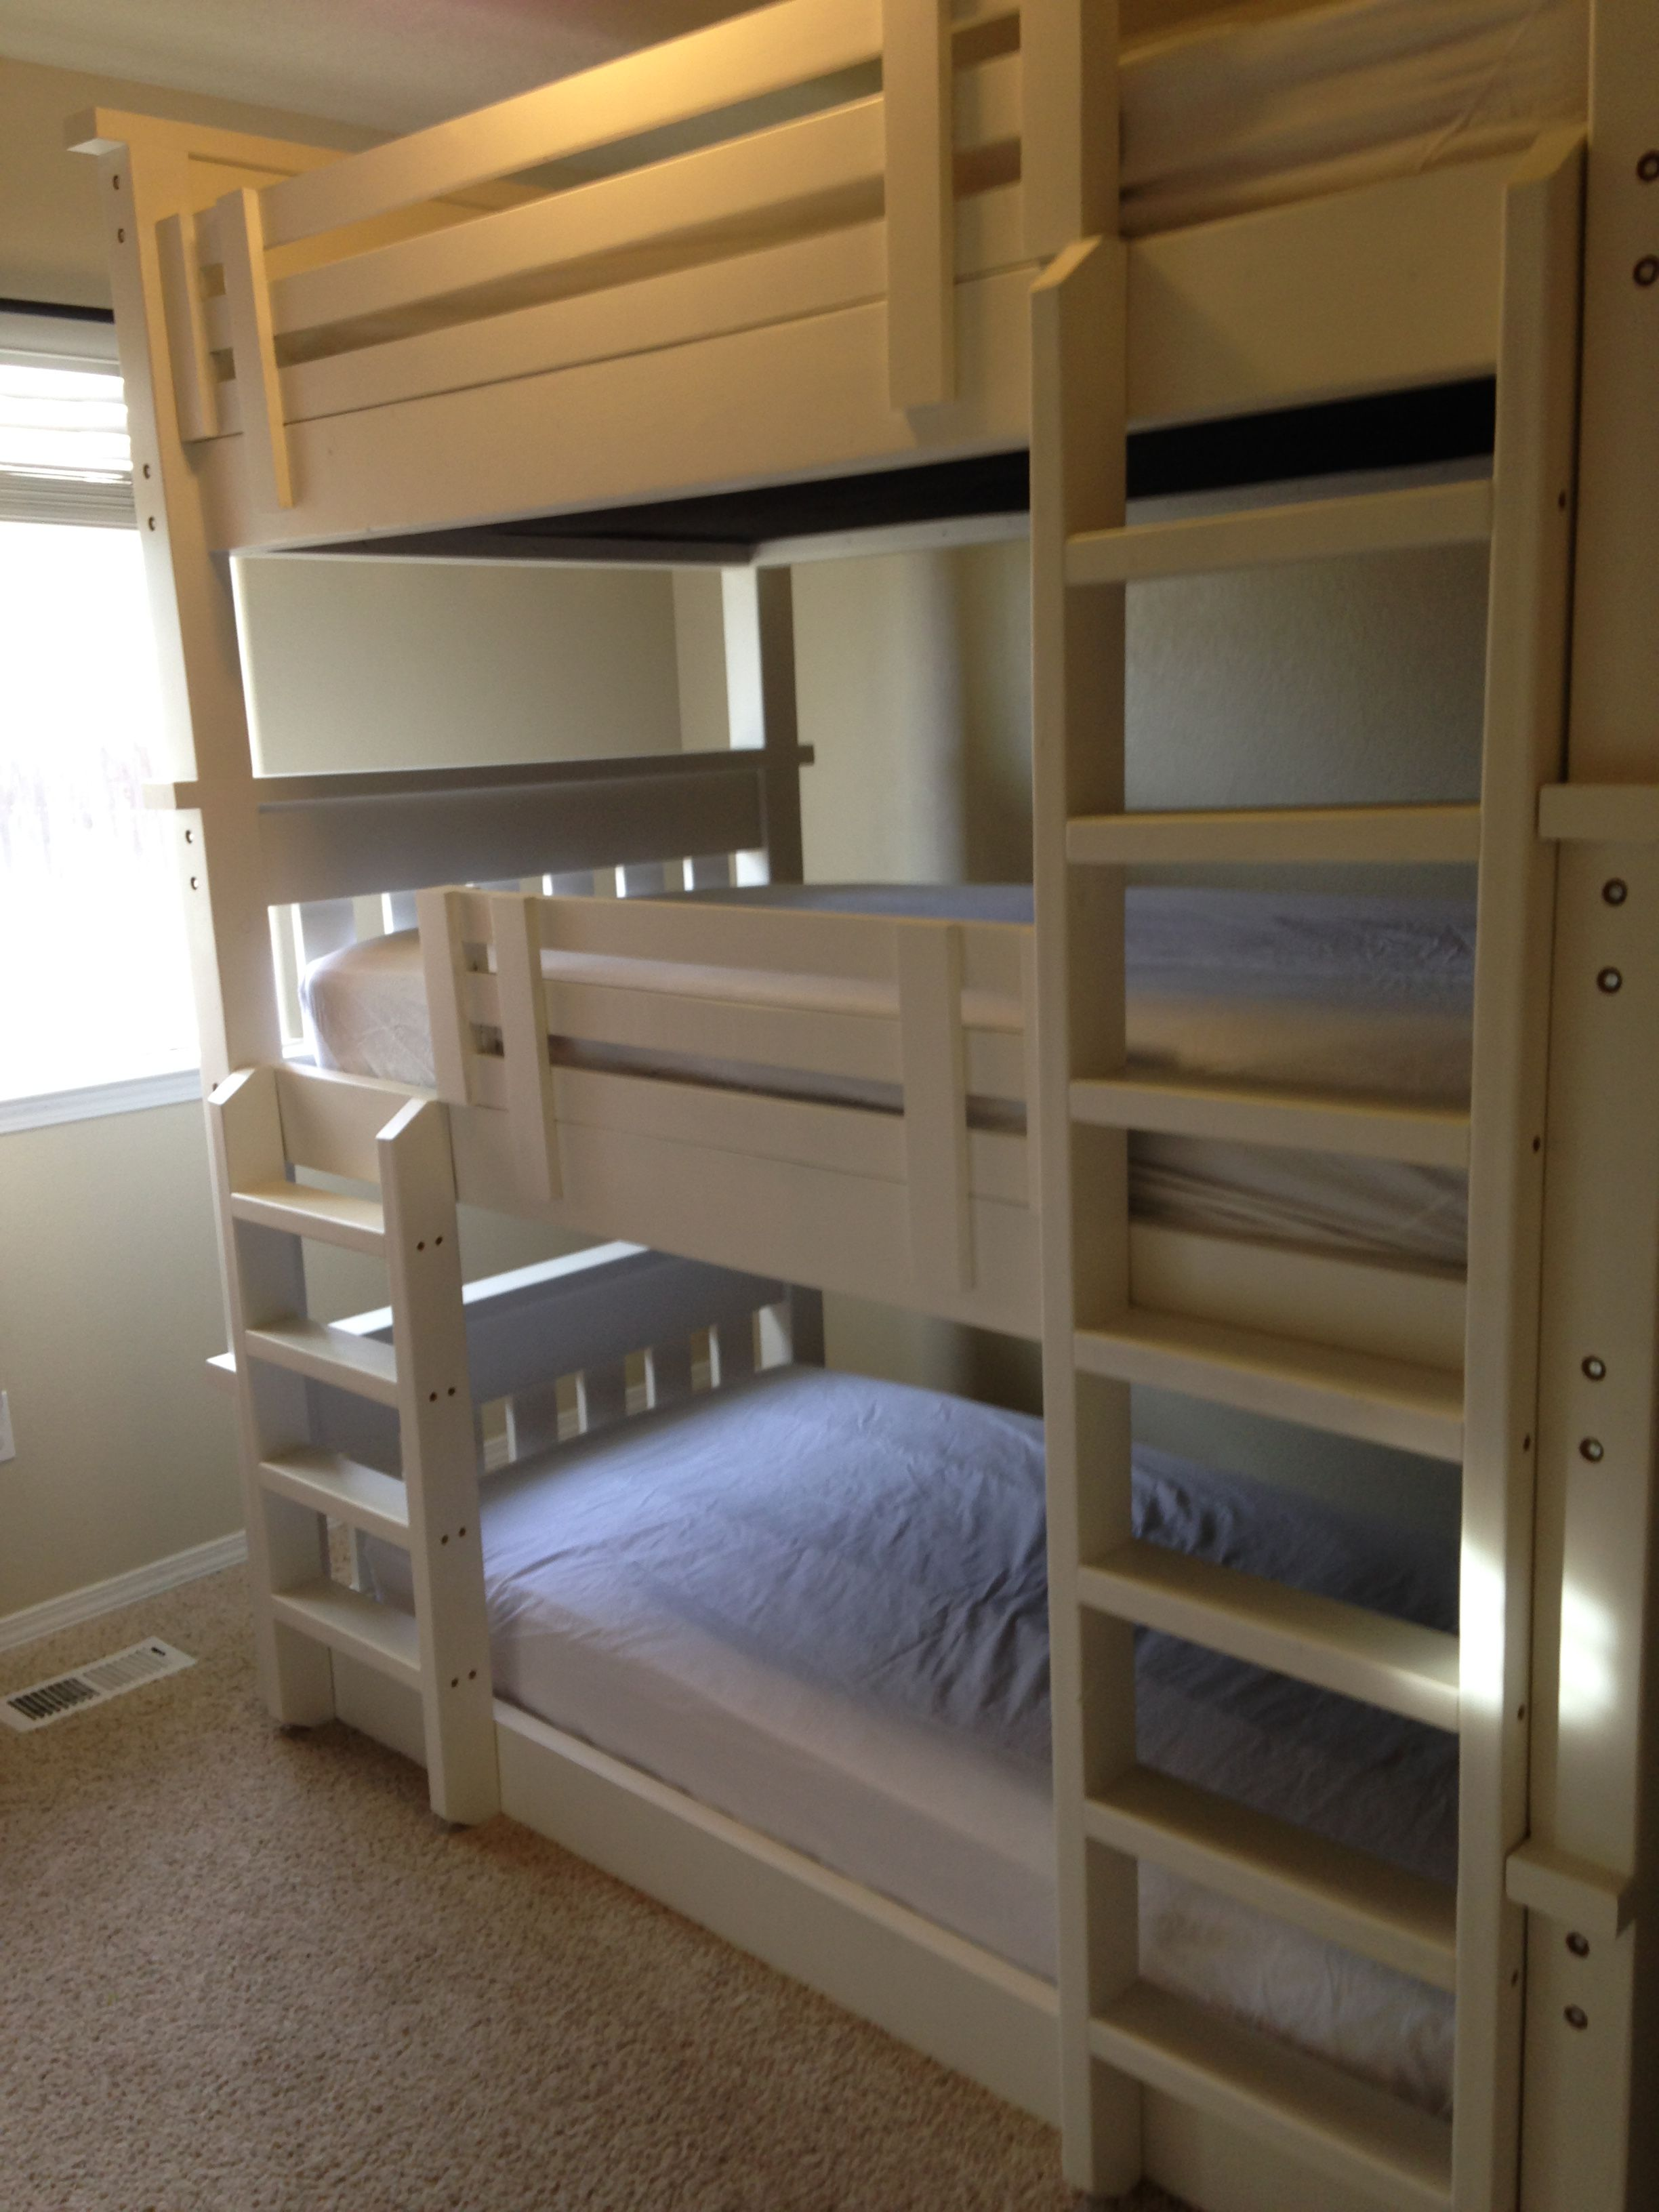 Bunk Bed Bedroom Ideas 7 43 Nice Triple Bunk Beds Ideas For Your Childrens Bedroom